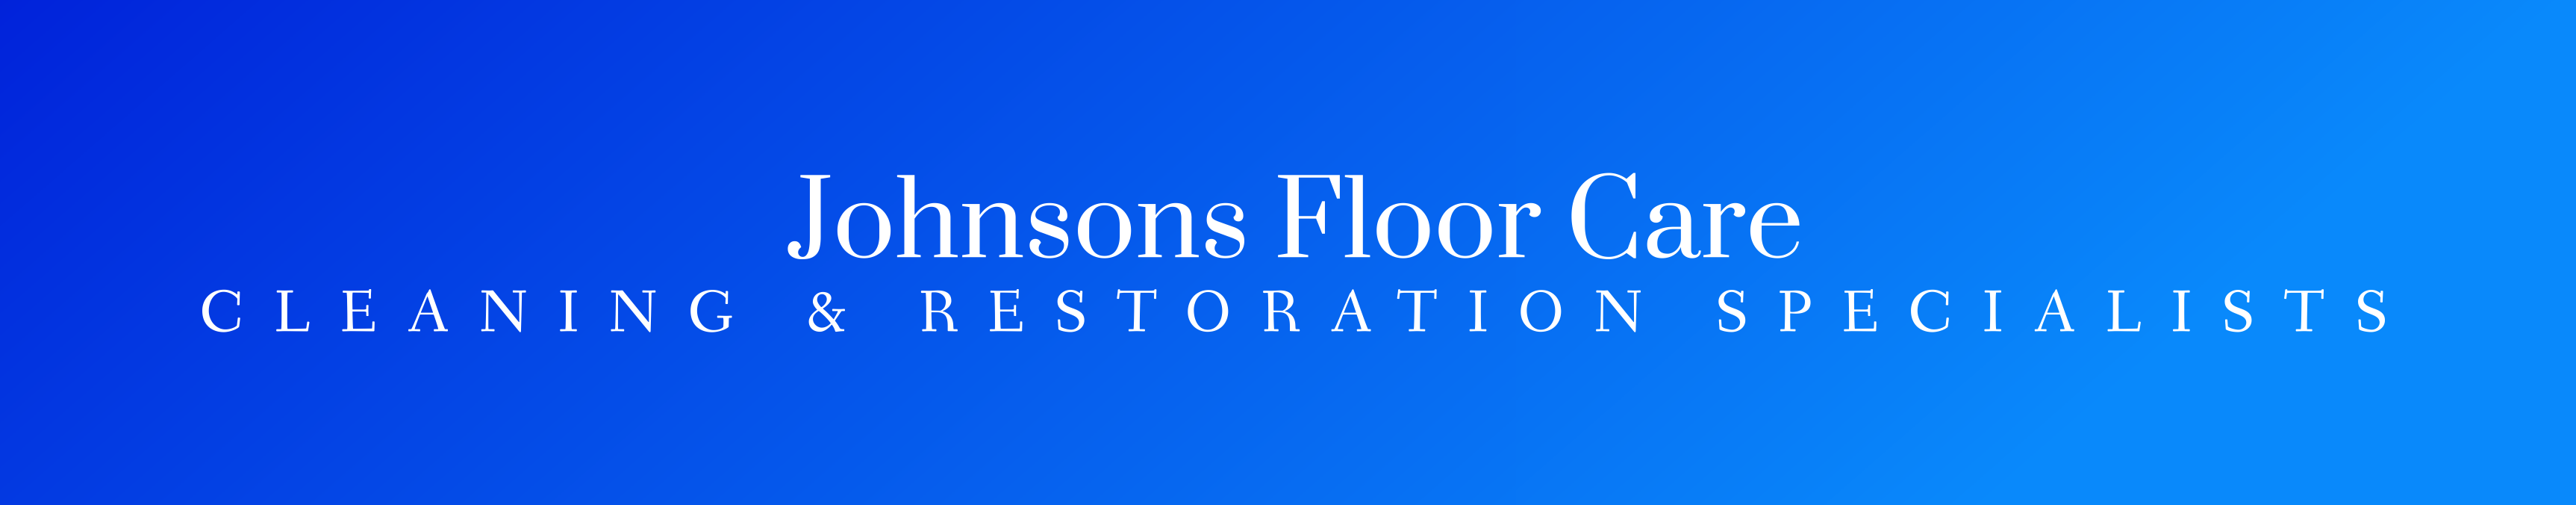 Johnsons Floor Care